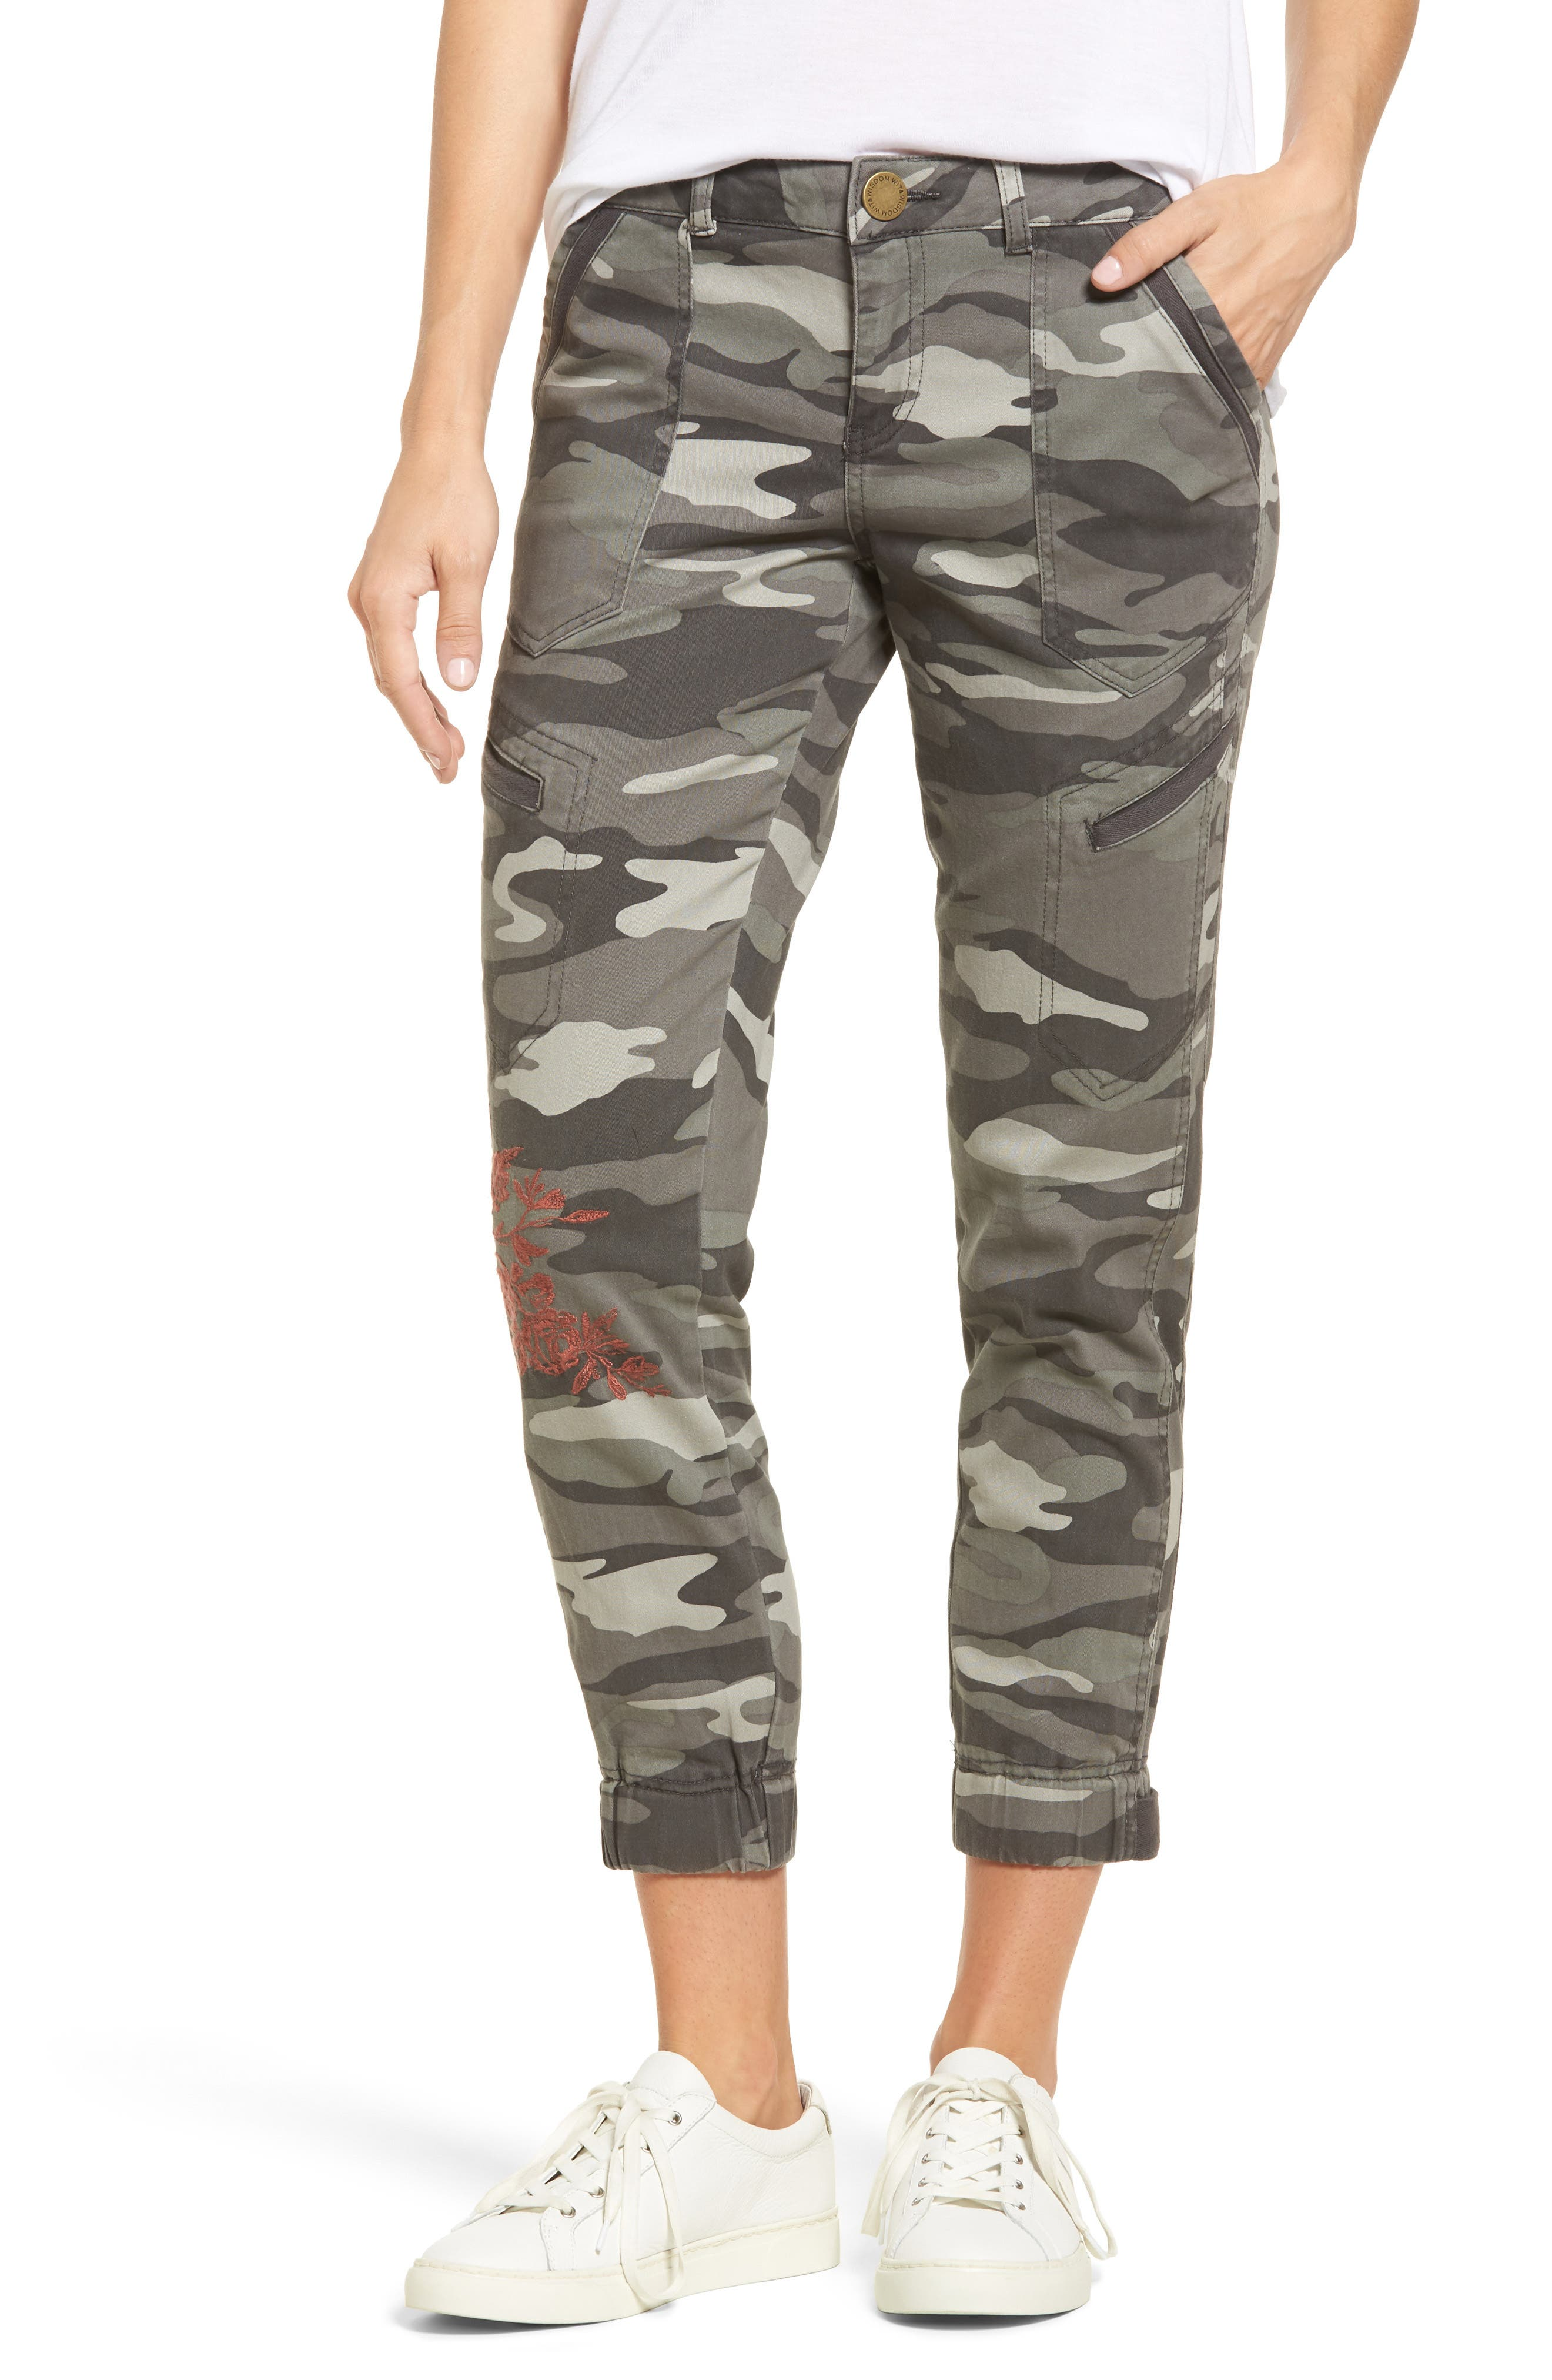 Alternate Image 1 Selected - Wit & Wisdom Embroidered Camo Utility Joggers (Nordstrom Exclusive)